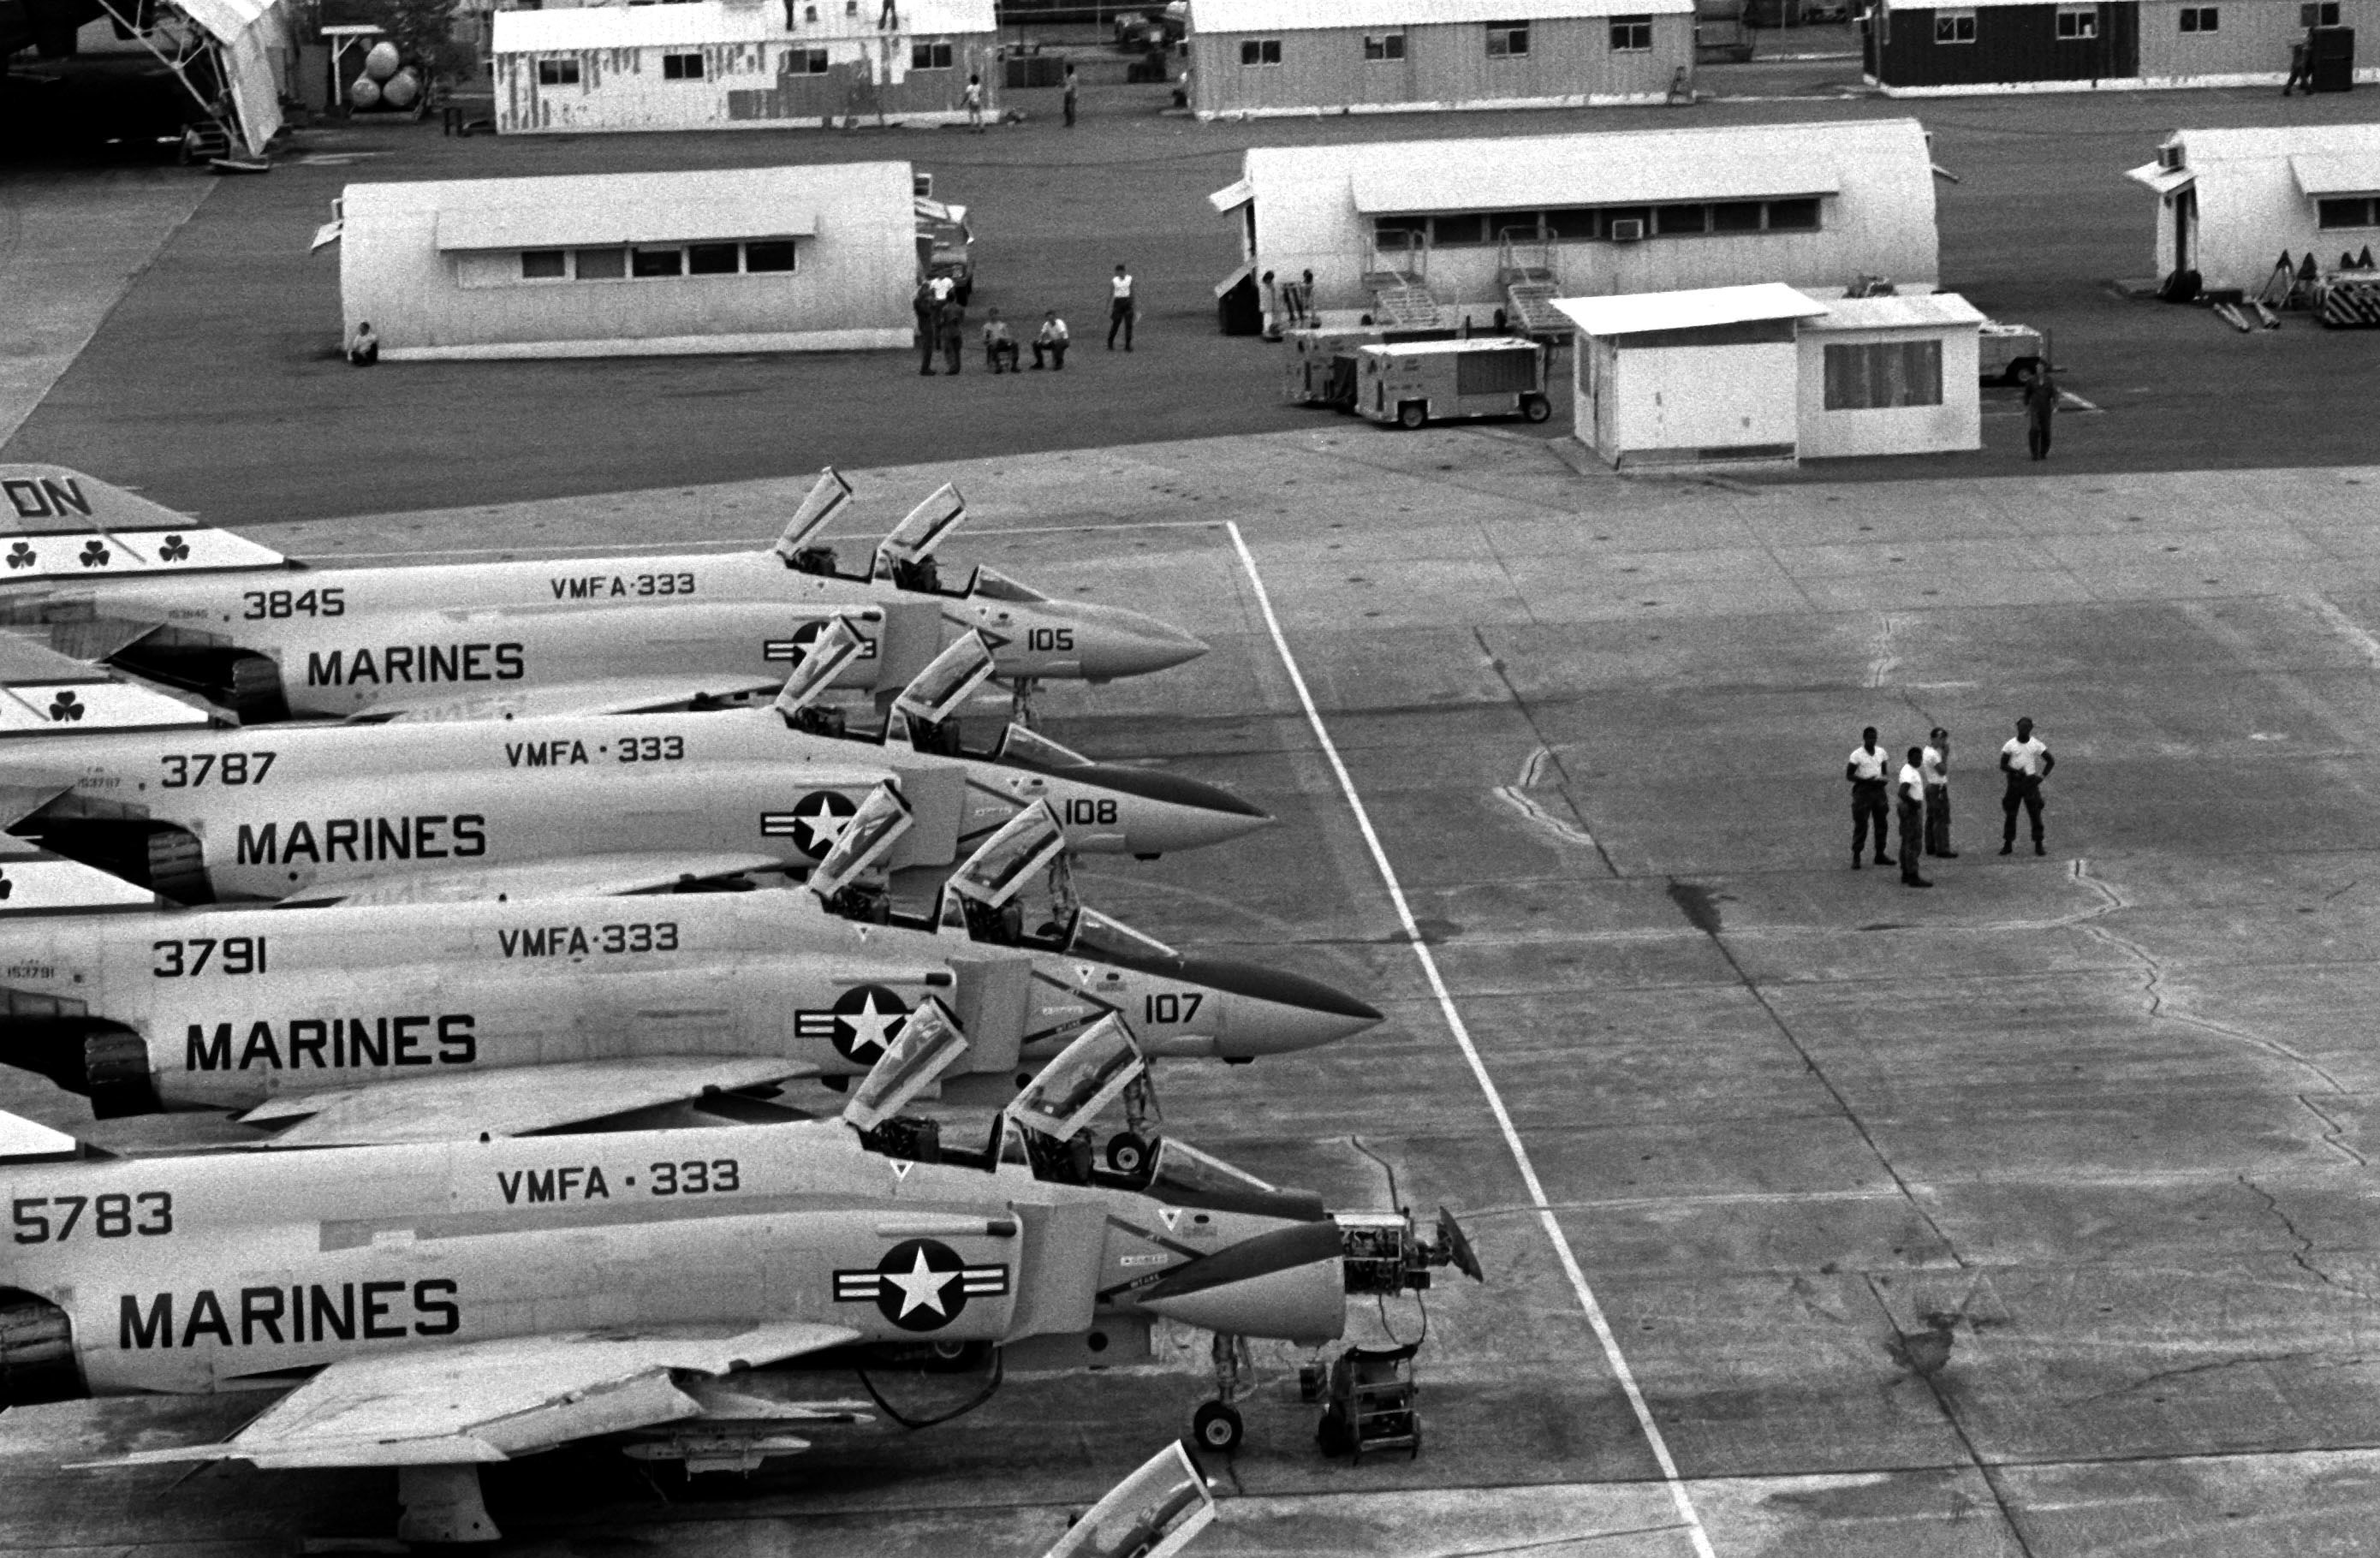 File:F-4Js VMFA-333 Cubi Point.jpg - Wikimedia Commons